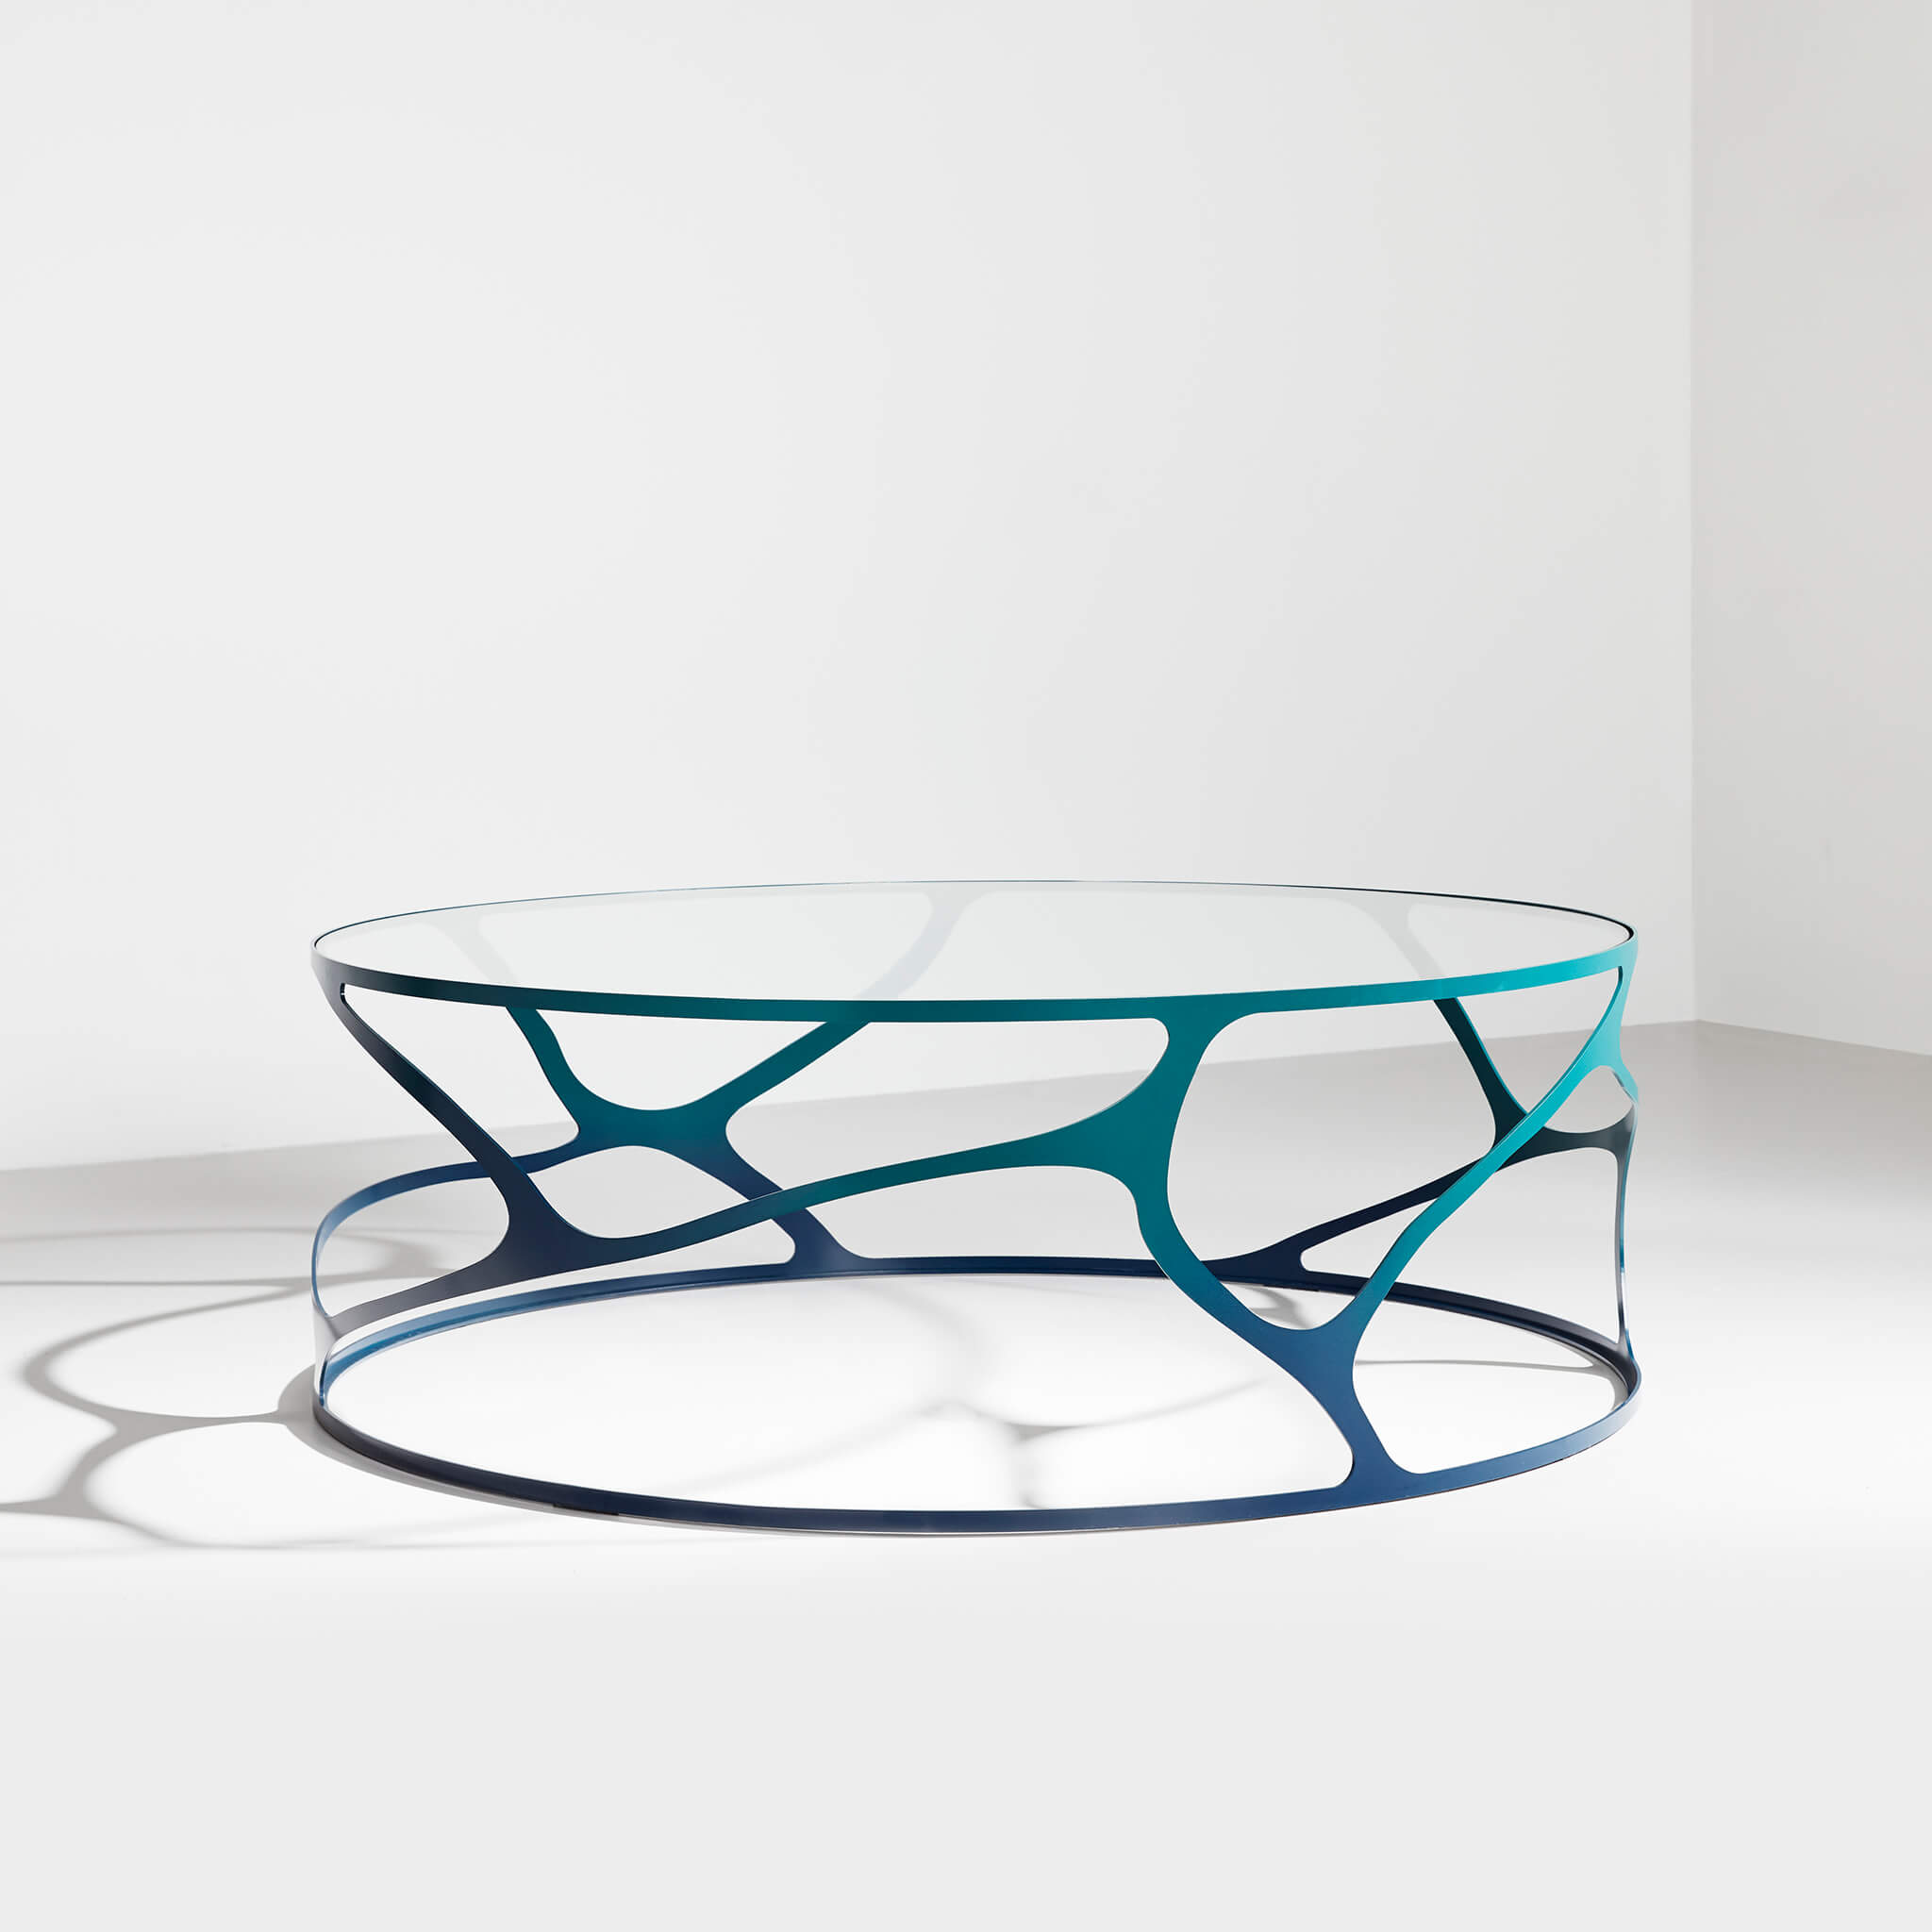 Tom-Faulkner_Papillon-Coffee-table-01